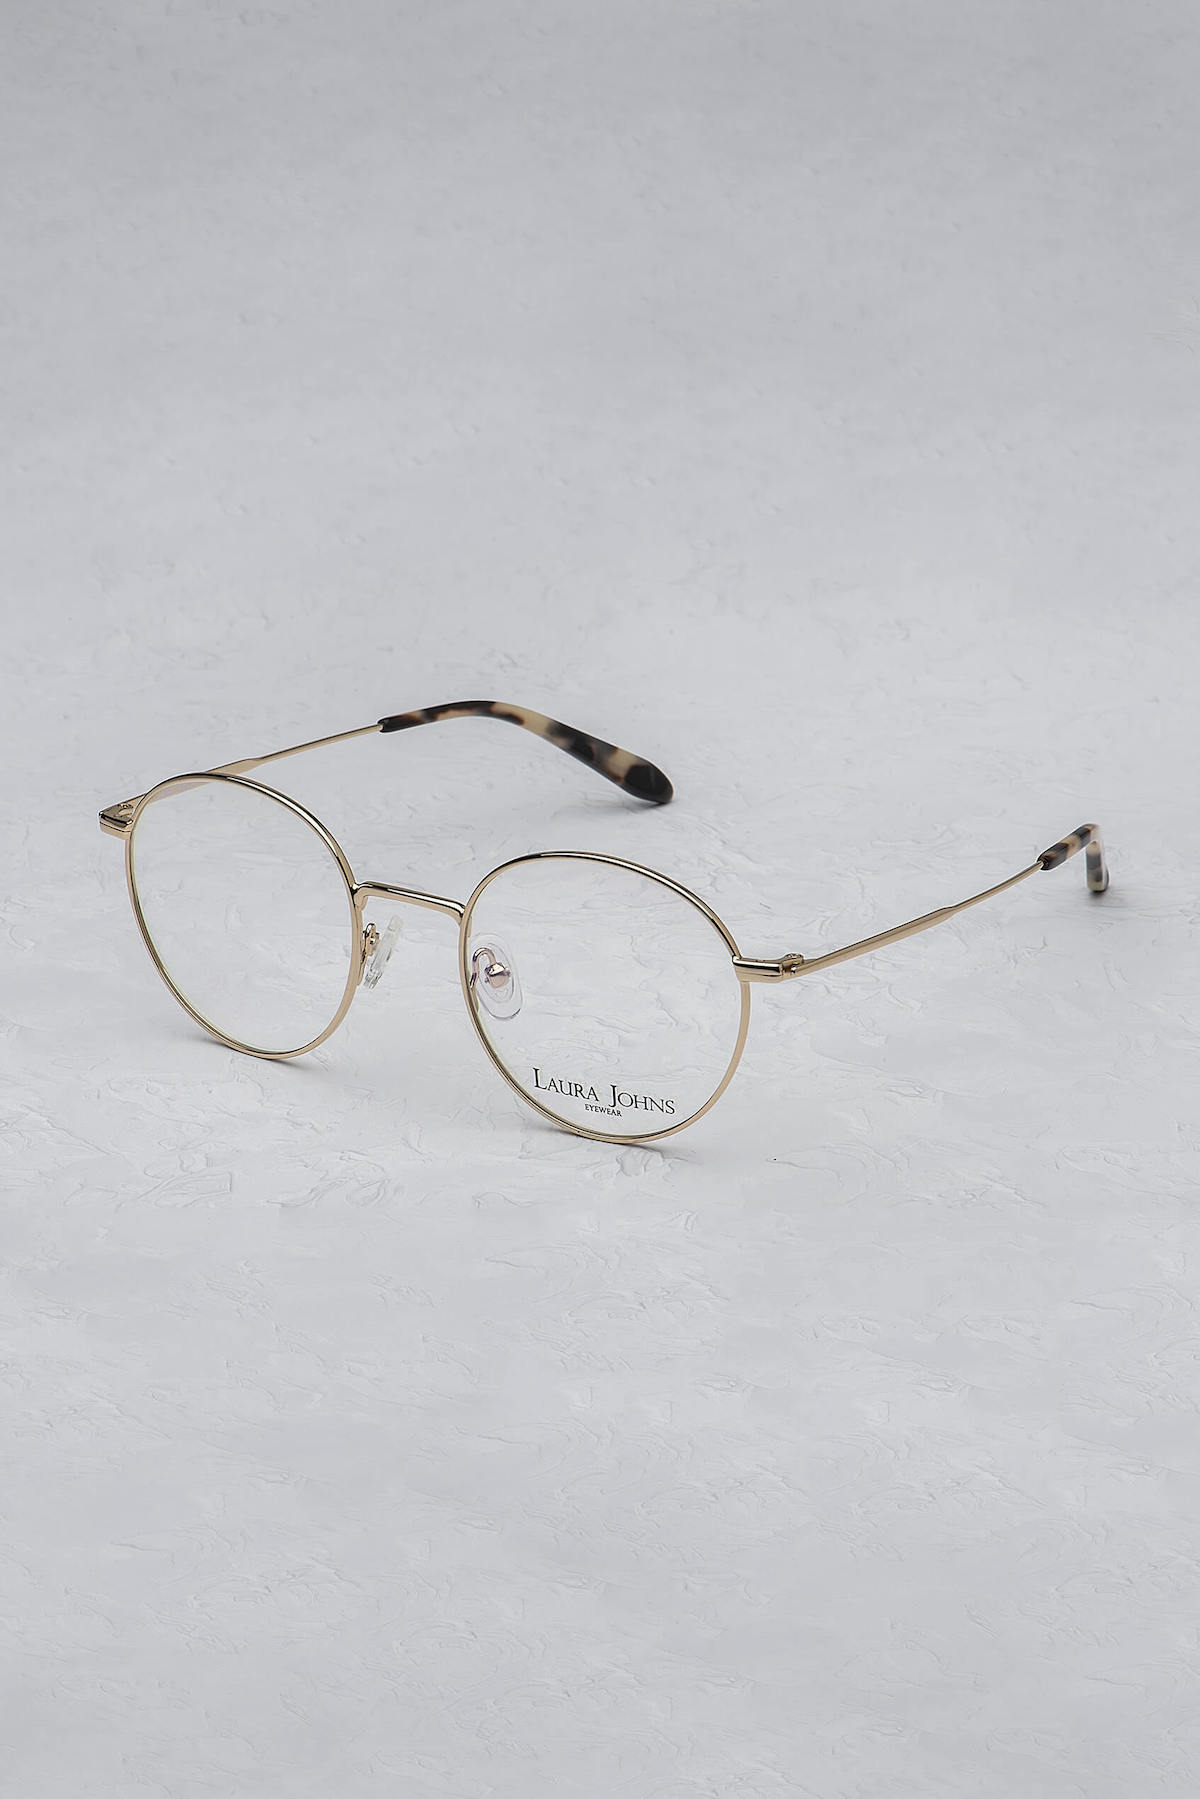 8515cdda3c Lunette de vue Laura Johns LJ4200 Ronde - Optic Duroc